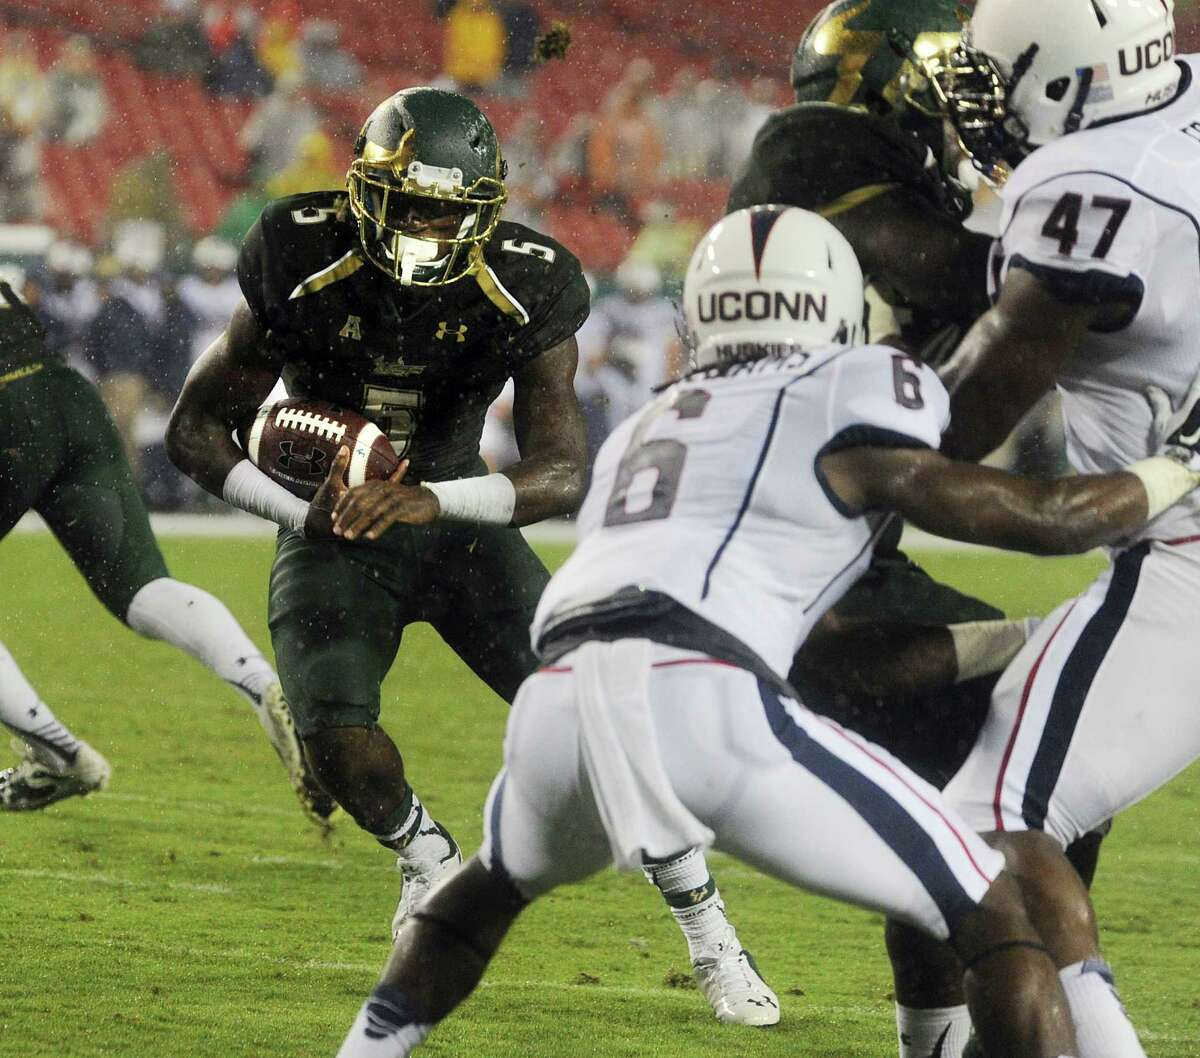 The University of South Florida's Marlon Mack (5) finds running room on his way to a touchdown against UConn during the Bulls' 17-14 win on Friday night in Tampa, Fla.